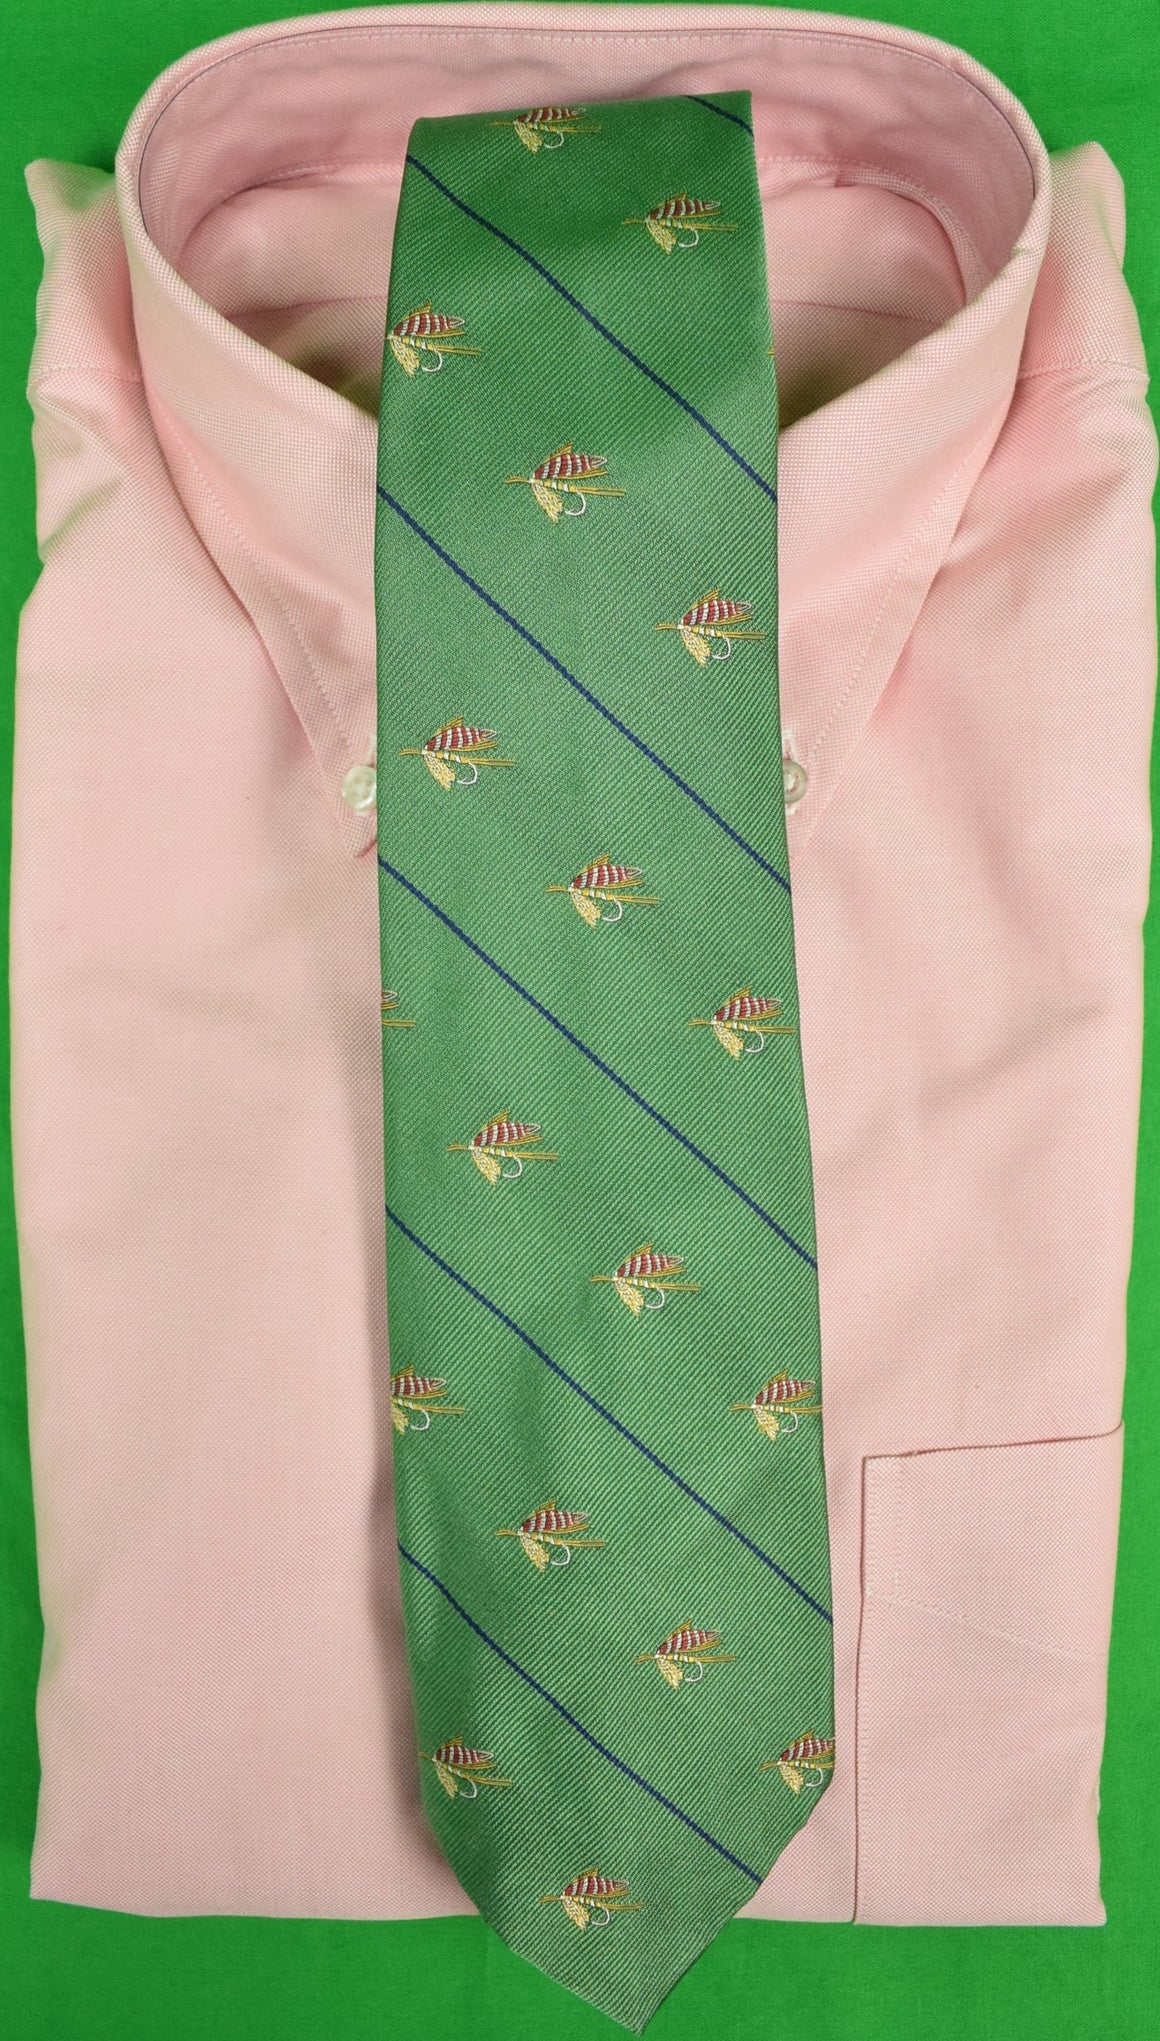 Polo by Ralph Lauren Sage Green Italian Silk Tie w/ Trout-Fly Motif